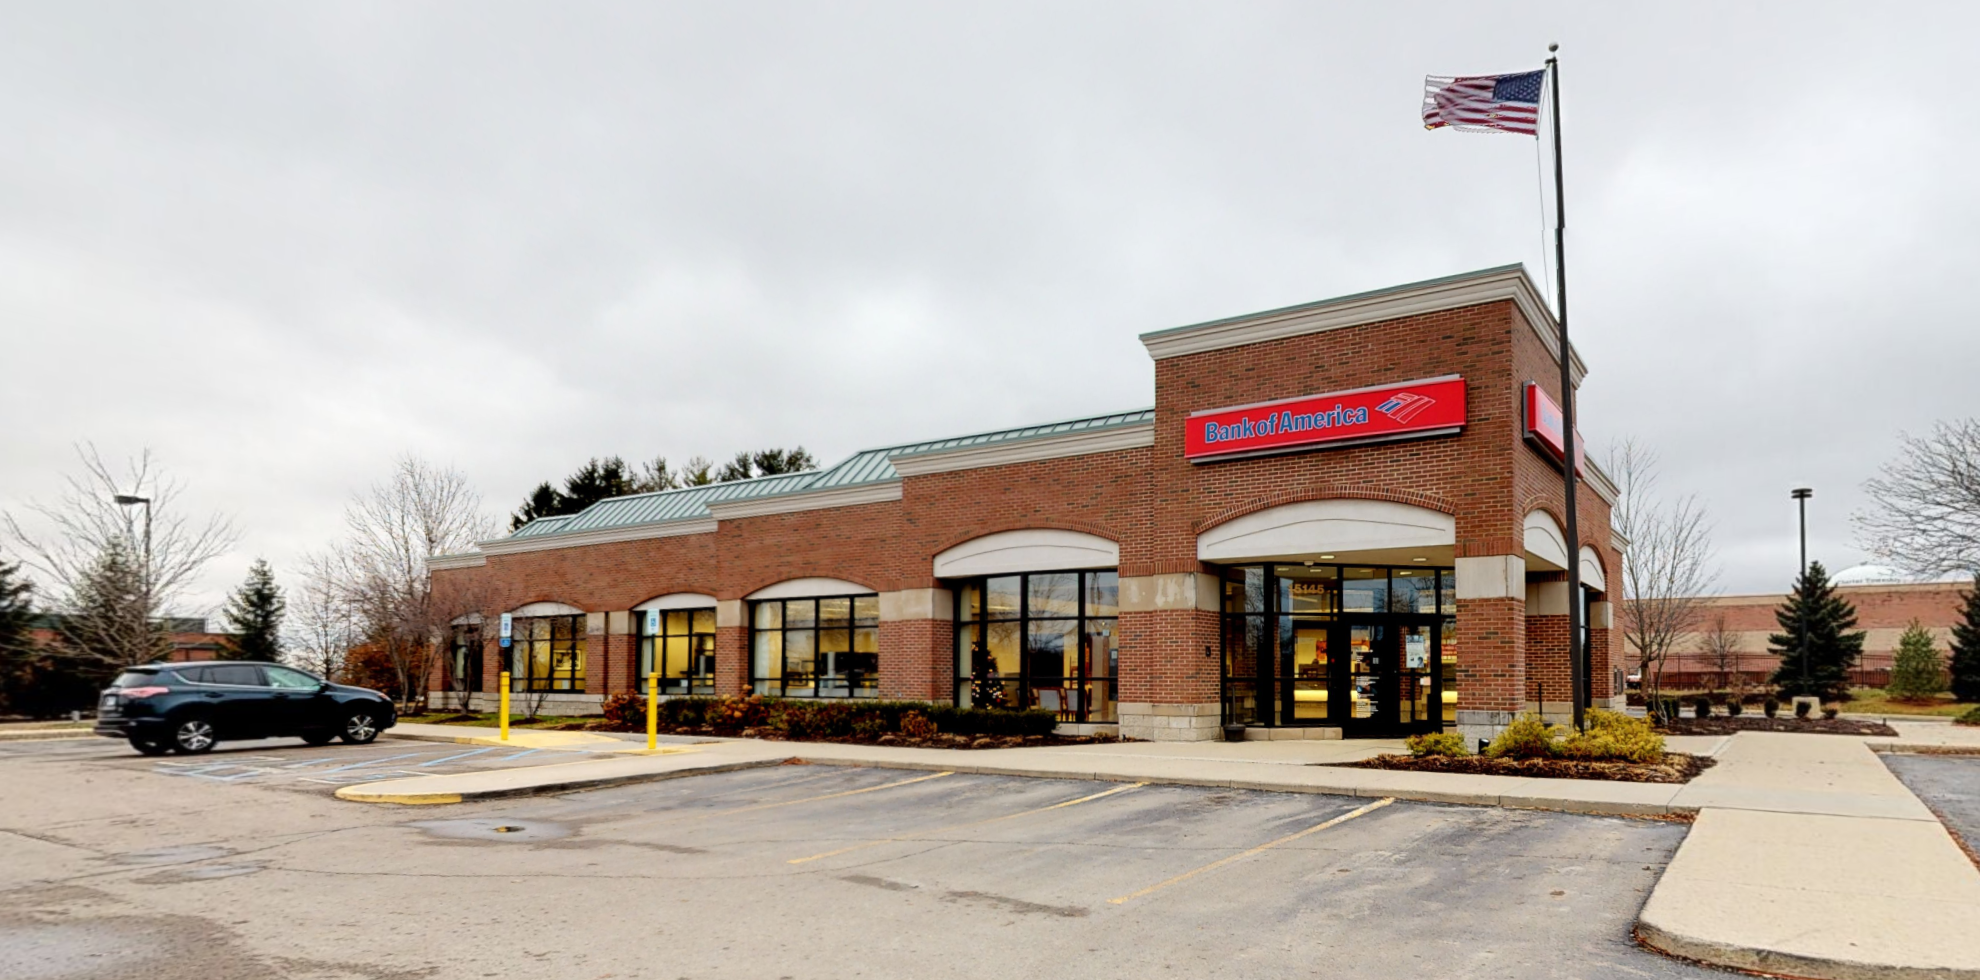 Bank of America financial center with drive-thru ATM | 15145 N Beck Rd, Plymouth, MI 48170